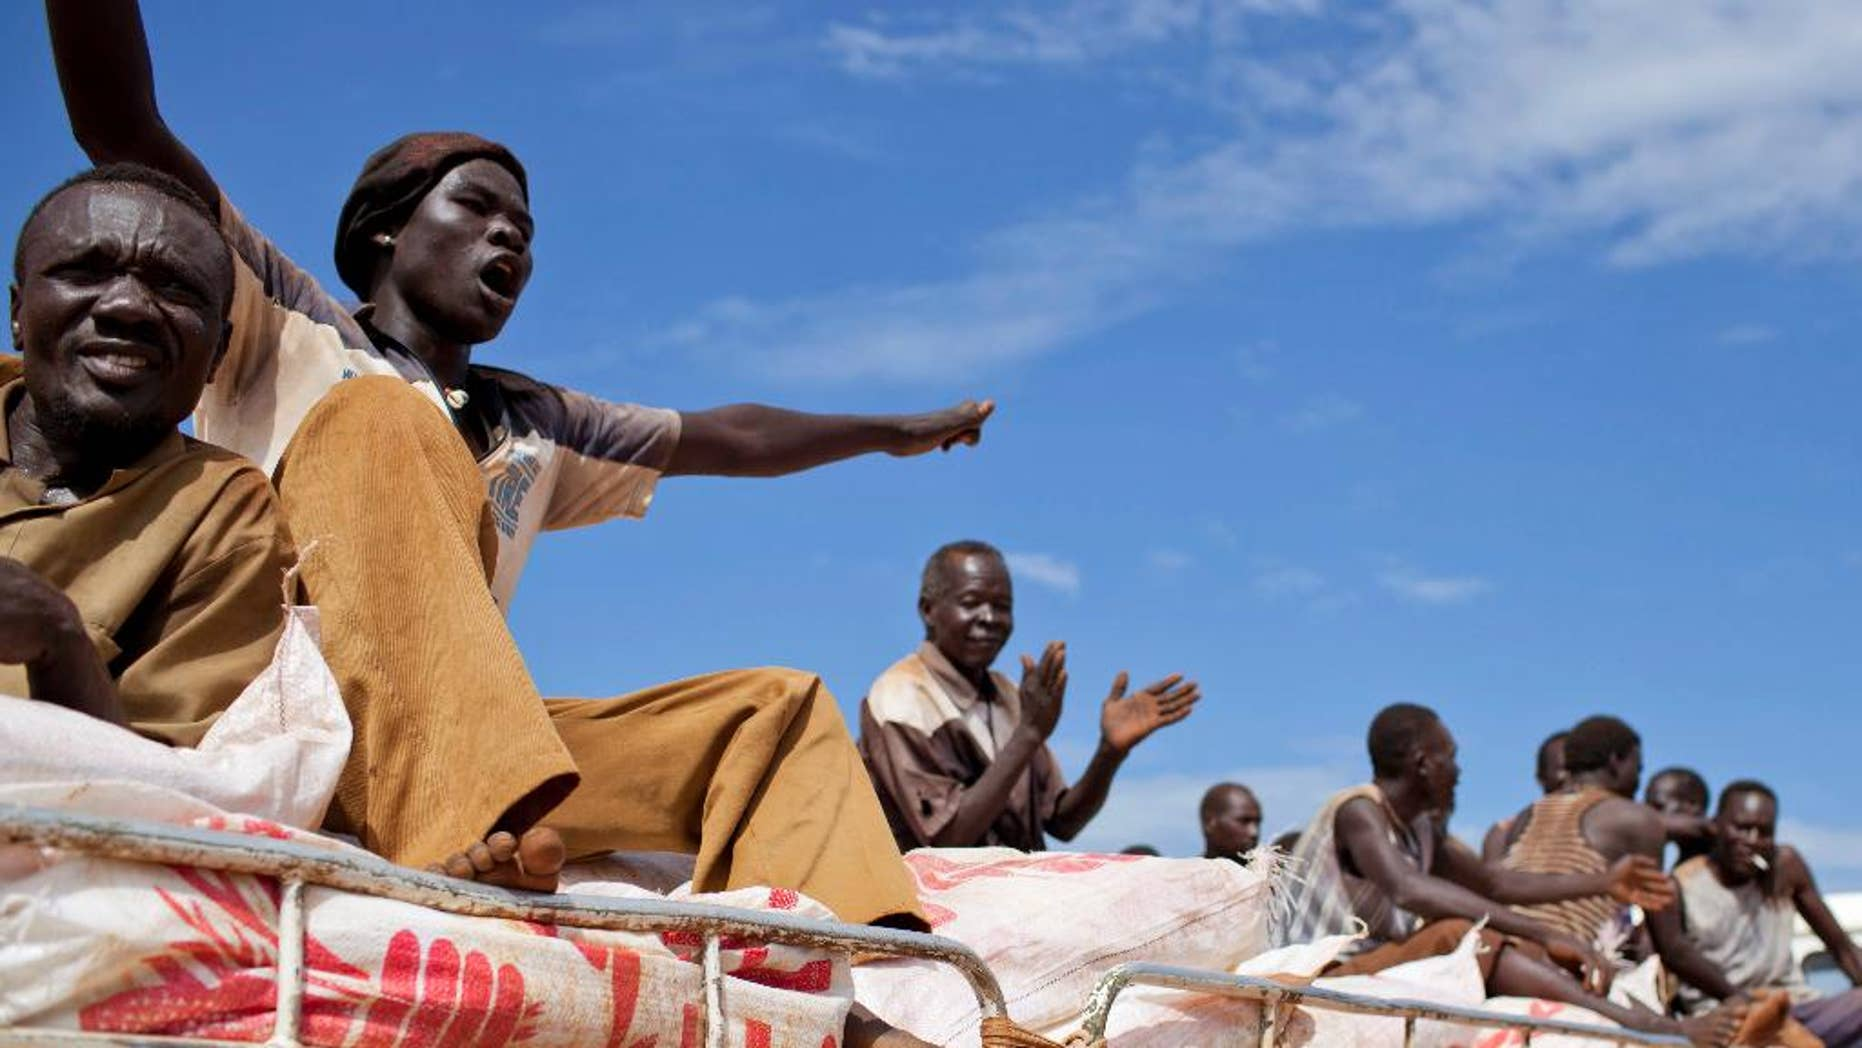 """FILE - In this Sunday Sept. 16, 2012 file photo, South Sudanese men sing and clap as they ride on the truck carrying WFP food supplies to a warehouse, in Yida camp, South Sudan.  The World Food Program said Friday April 14, 2017 it is """"horrified"""" to learn that three of its South Sudan workers were killed this week in violence in the western town of Wau, as the country's civil war continues under warnings of possible genocide. (AP Photo/Mackenzie Knowles-Coursin, File)"""